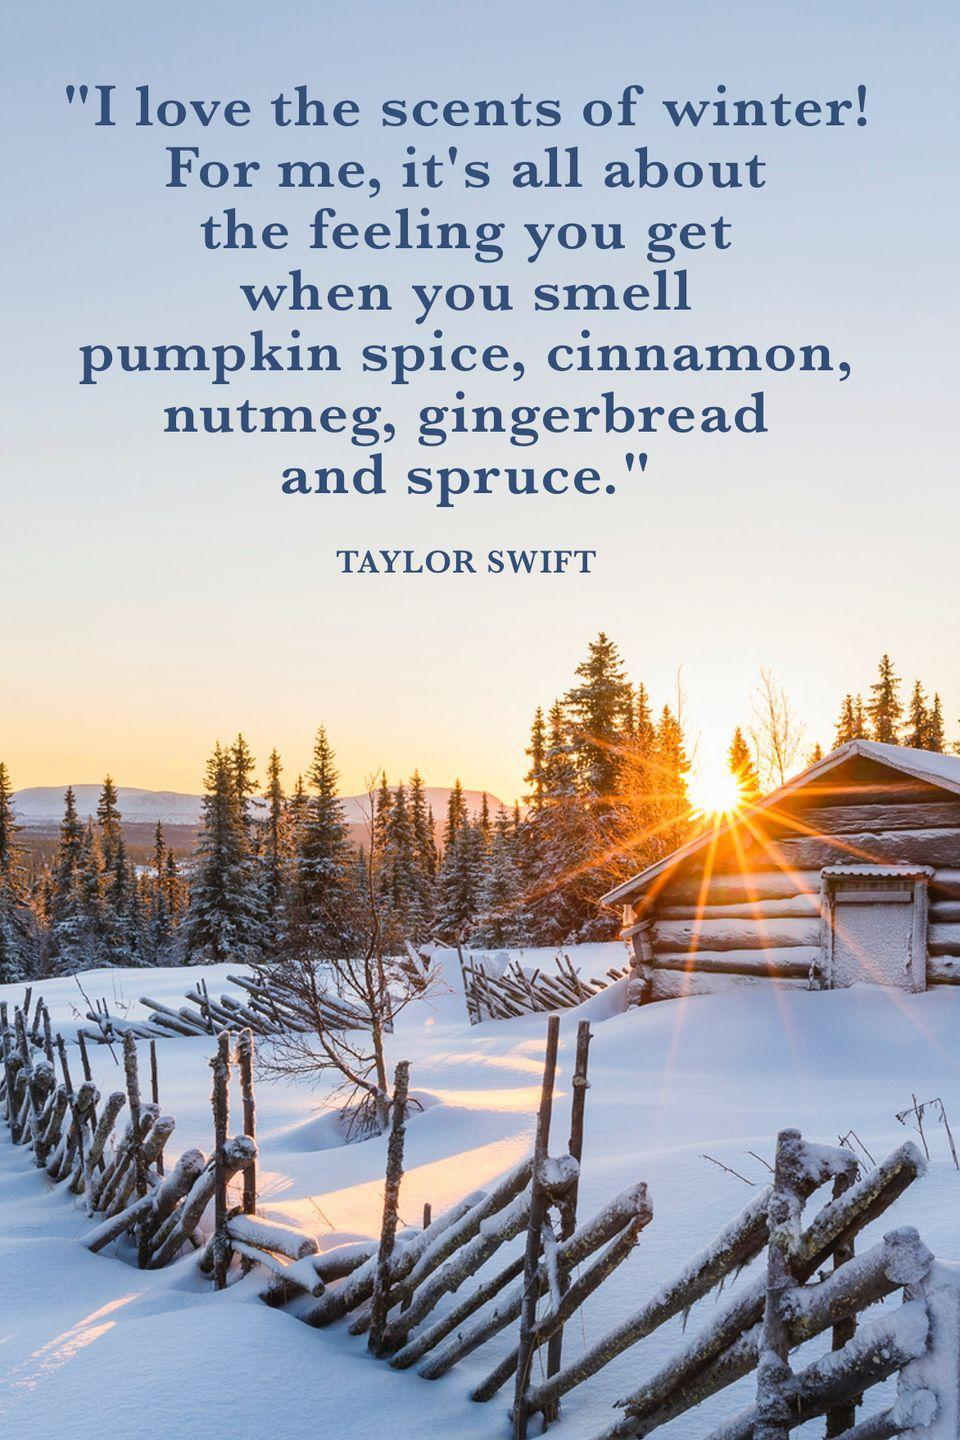 "<p>""I love the scents of winter! For me, it's all about the feeling you get when you smell pumpkin spice, cinnamon, nutmeg, gingerbread and spruce.""</p>"